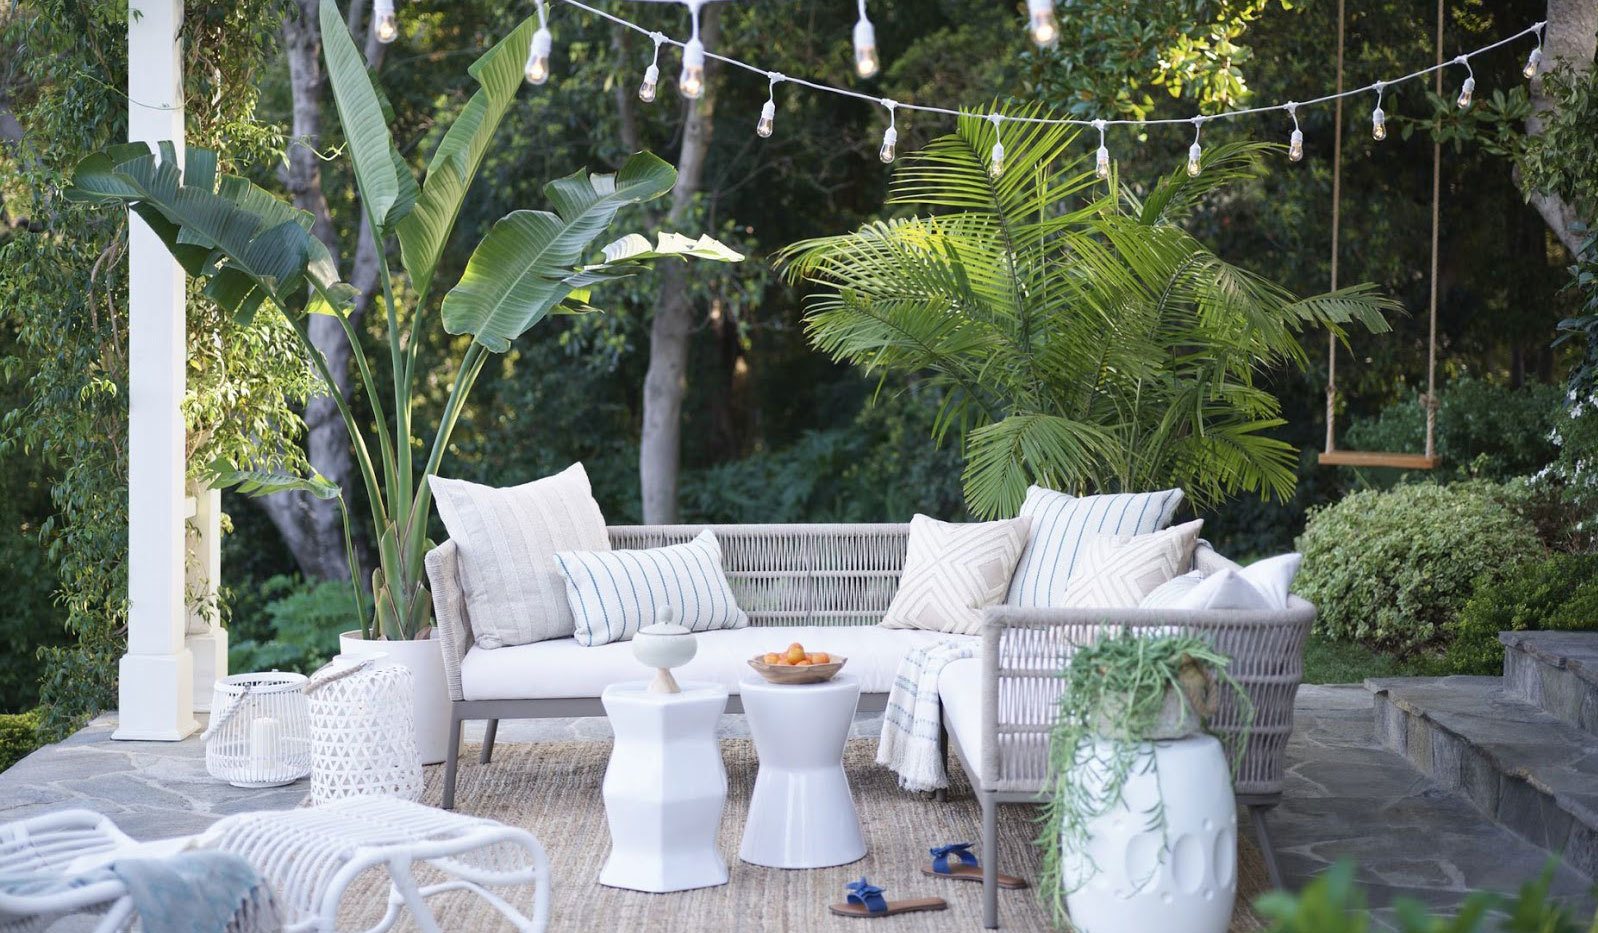 8 Ways Busy Parents Can Create The Backyard of Their Dreams